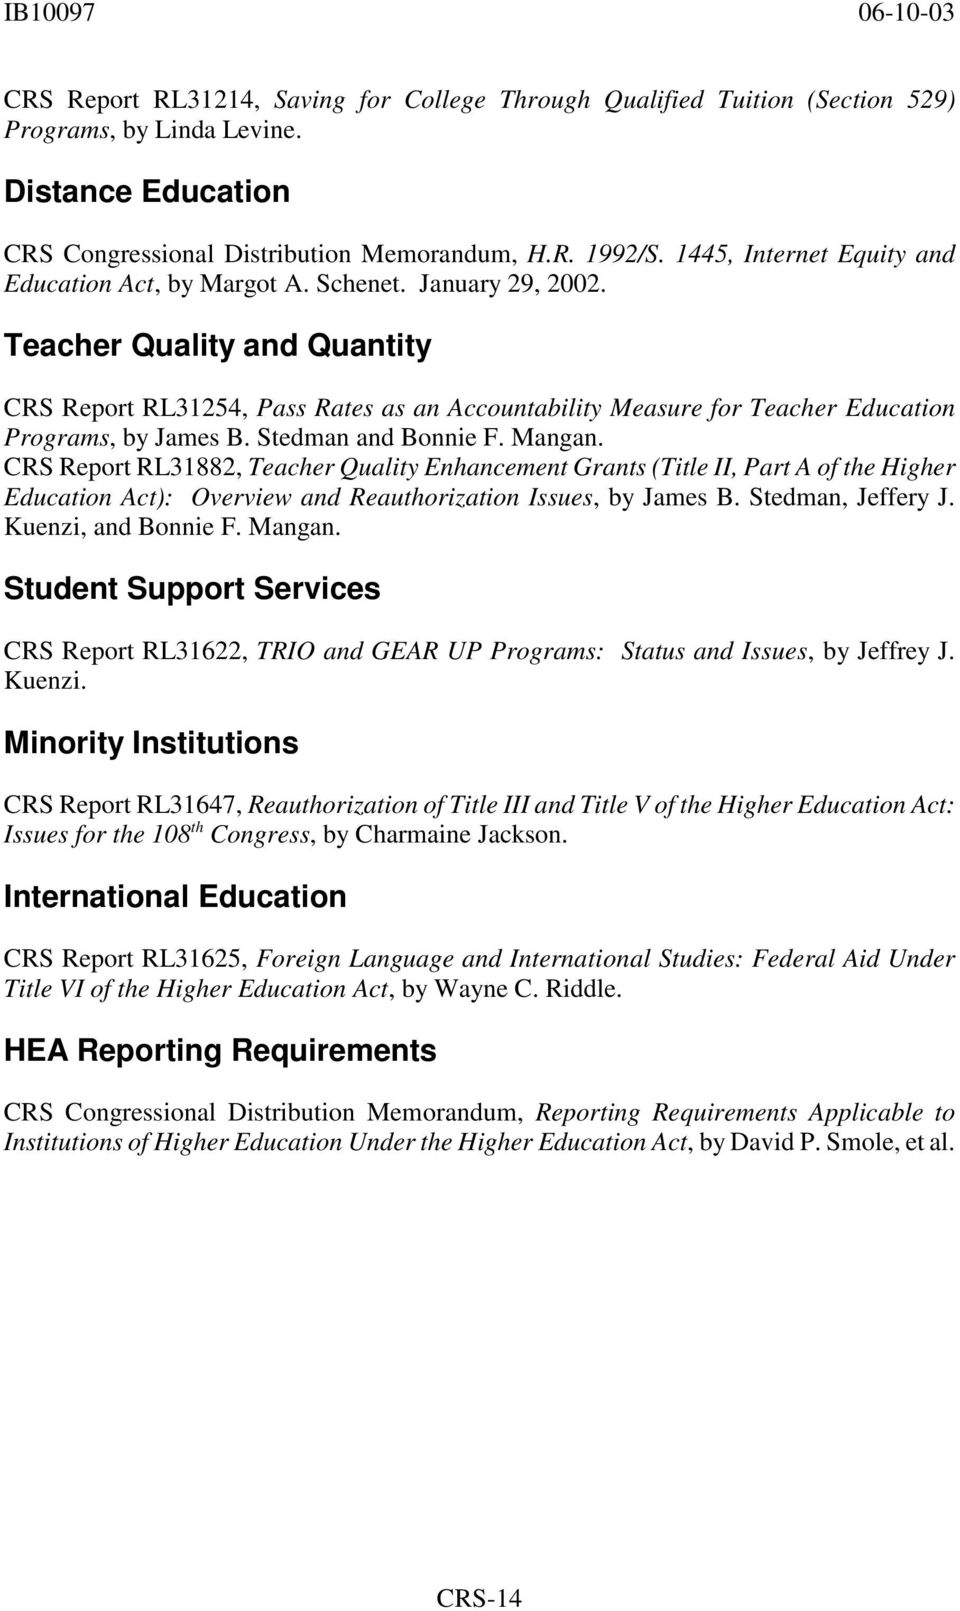 Teacher Quality and Quantity CRS Report RL31254, Pass Rates as an Accountability Measure for Teacher Education Programs, by James B. Stedman and Bonnie F. Mangan.